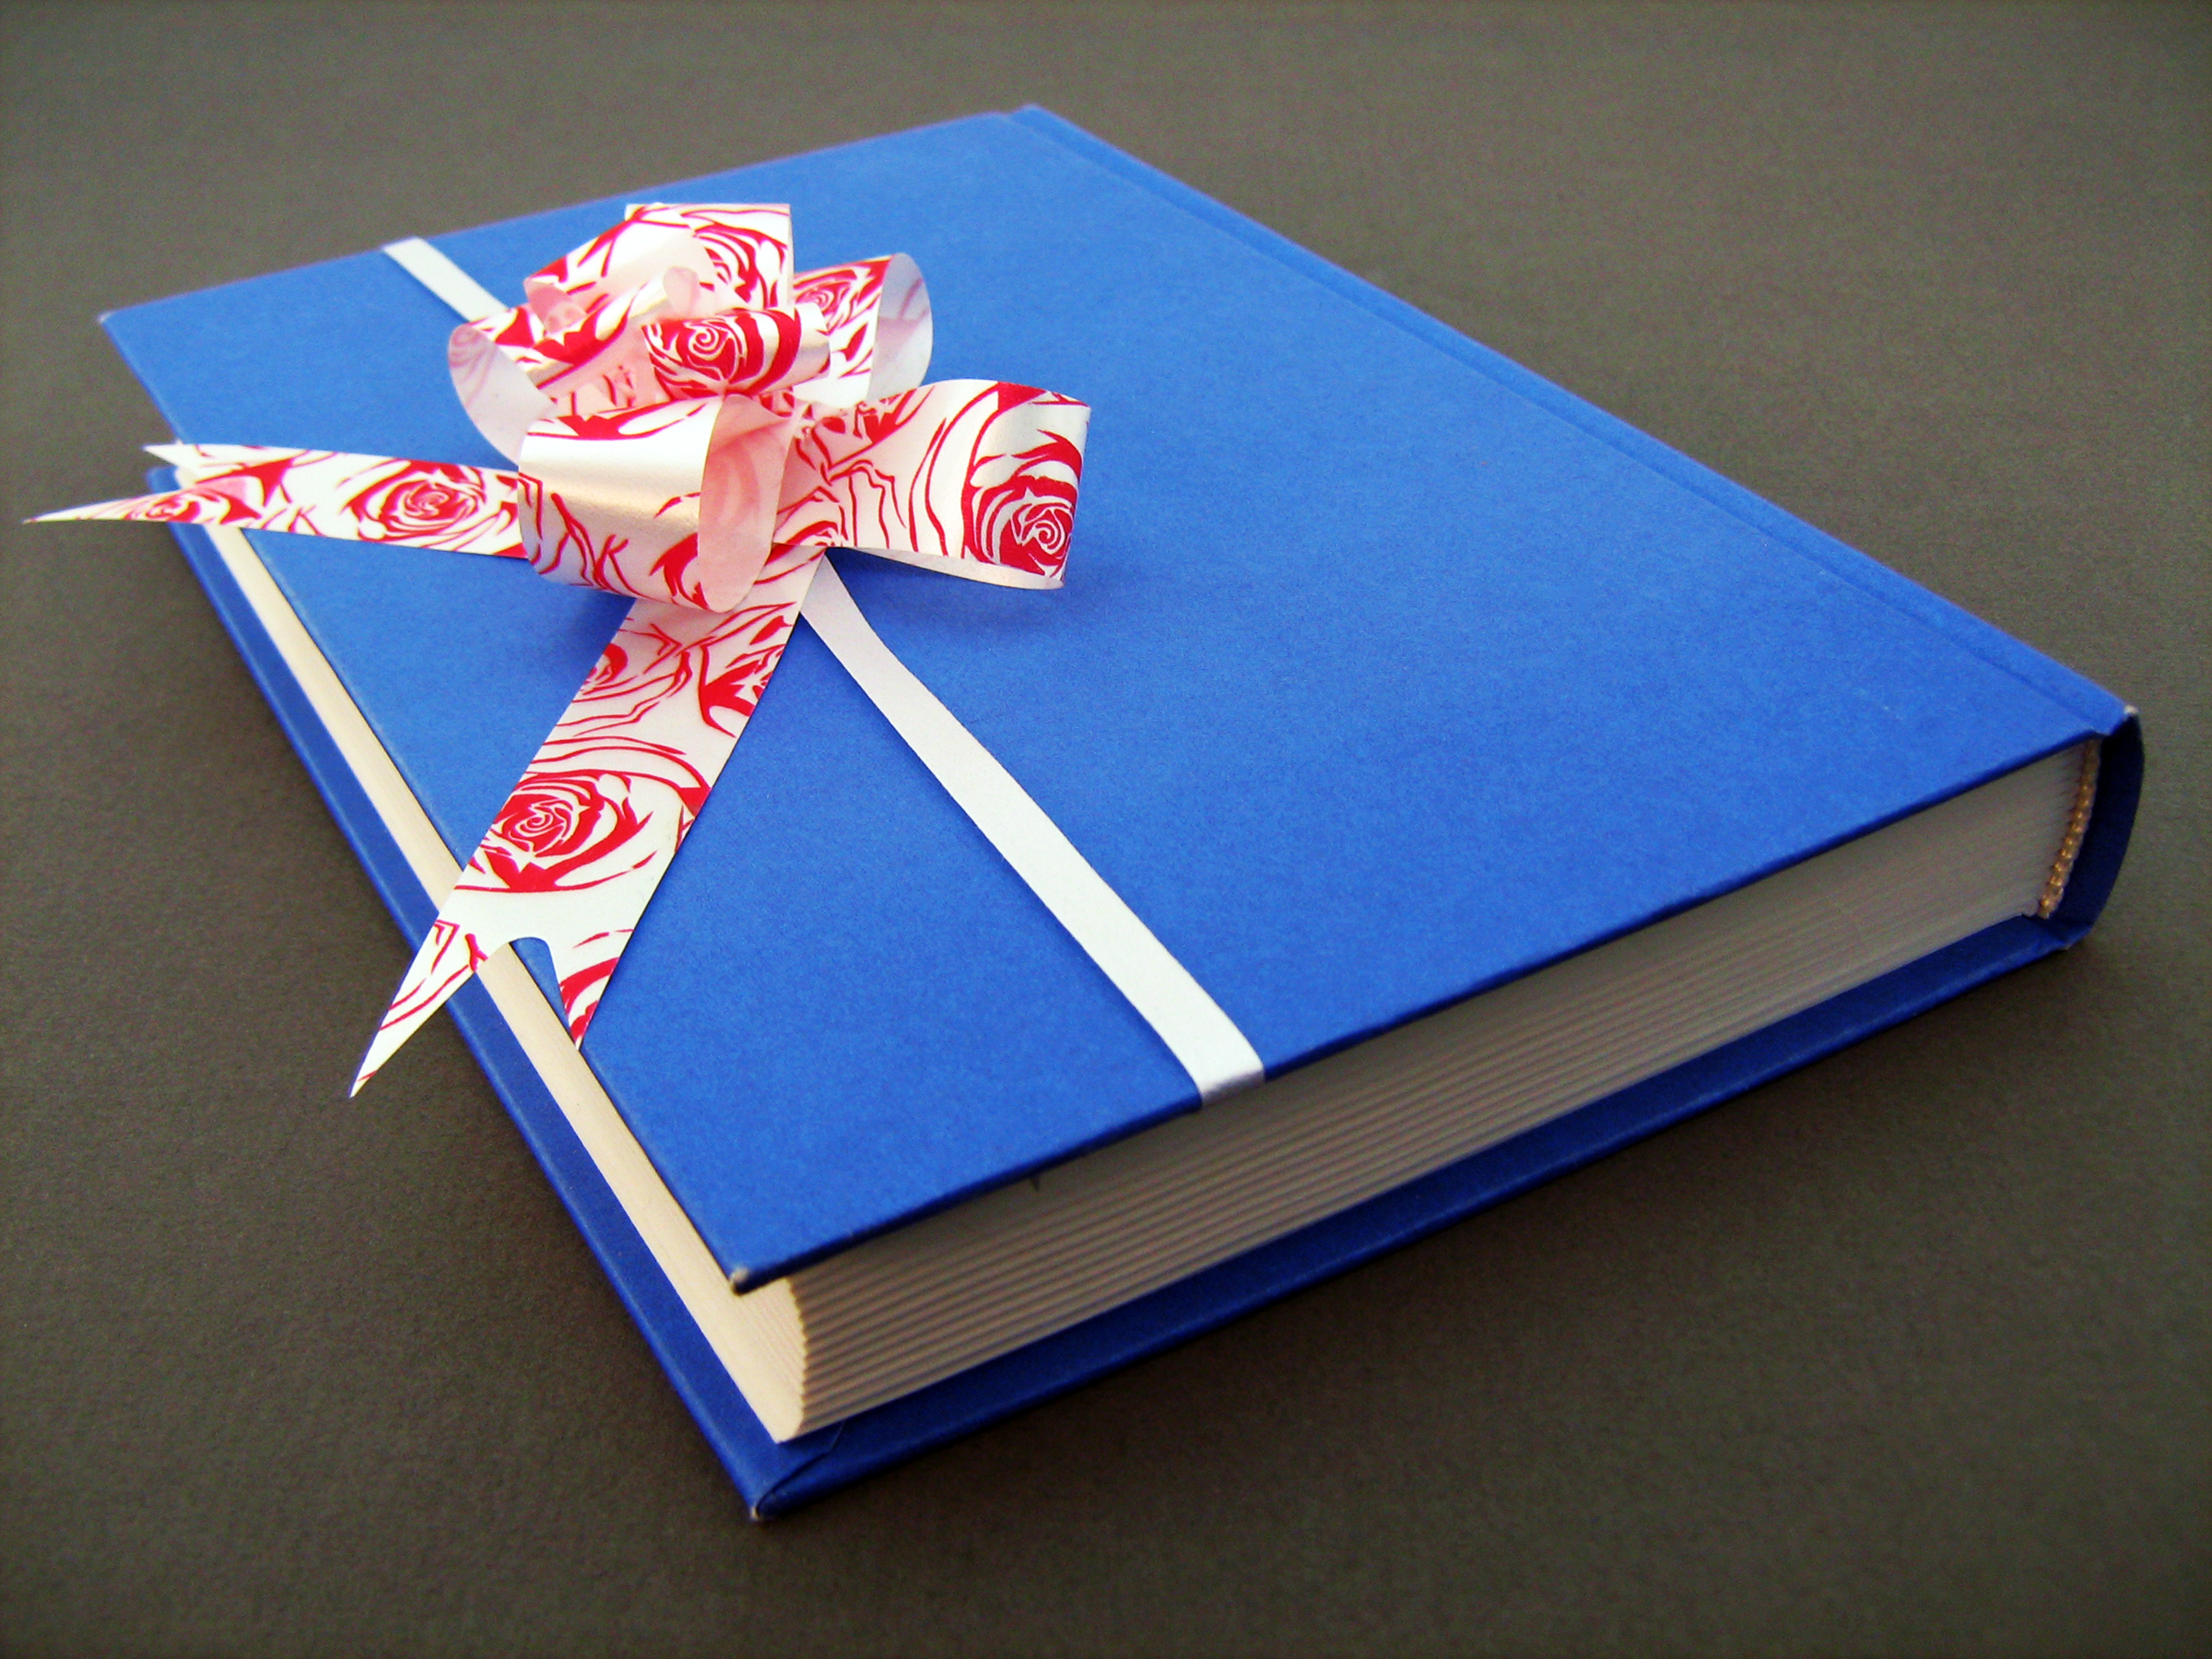 Blue book with bow, Book, Bookstore, Bow, Gift, HQ Photo